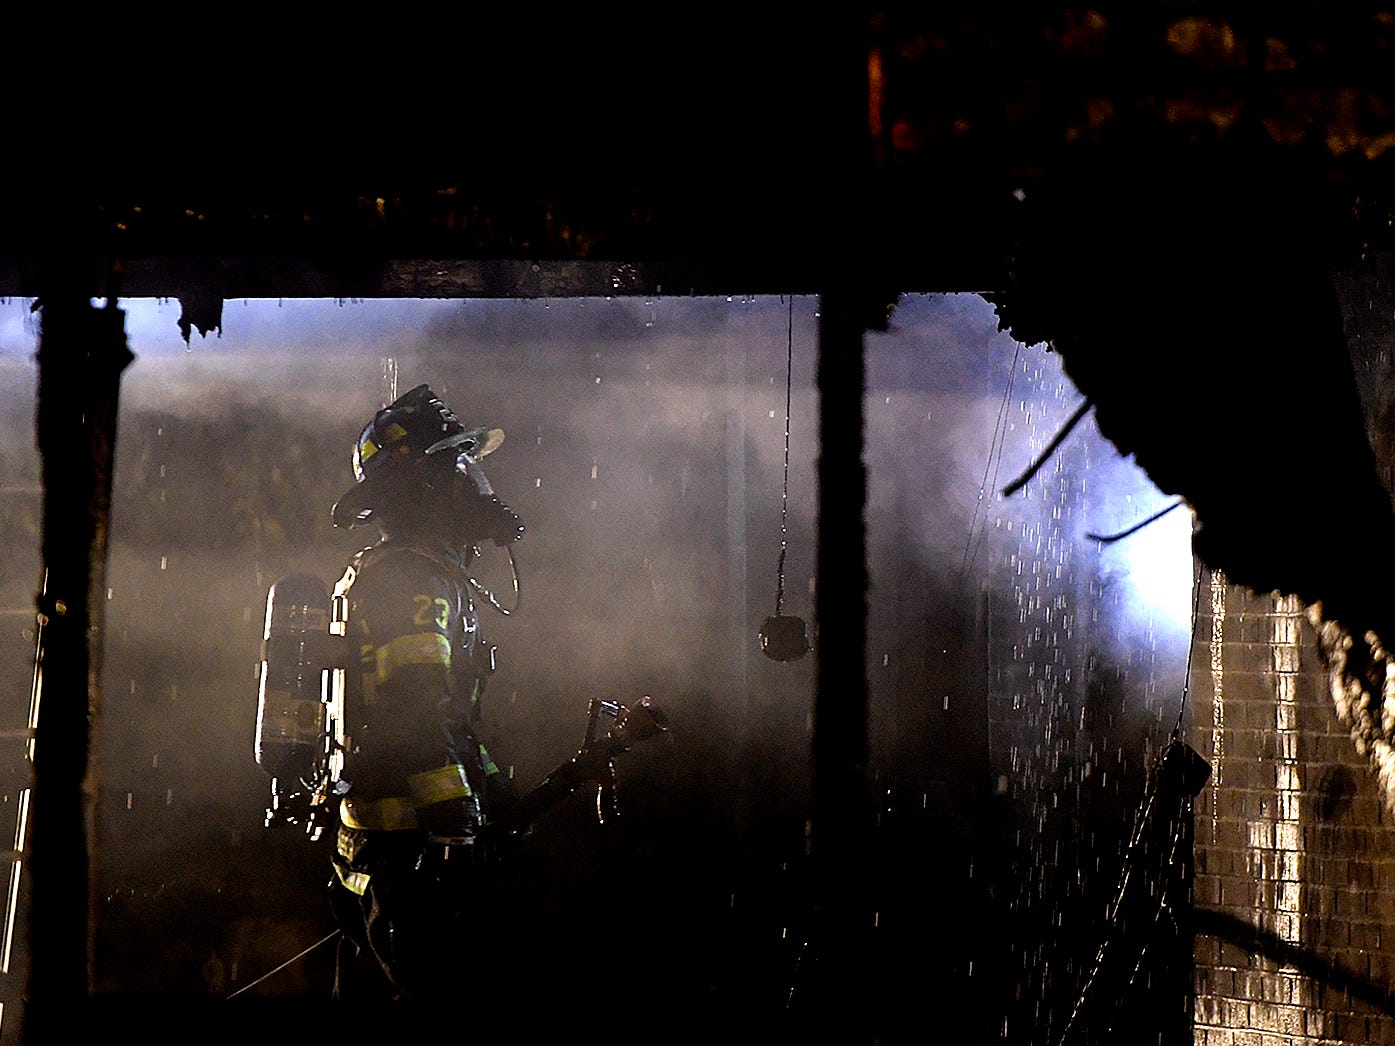 Firefighters battle a two-alarm blaze in a home in Dillsburg, Monday, November 12, 2018. John A. Pavoncello photo